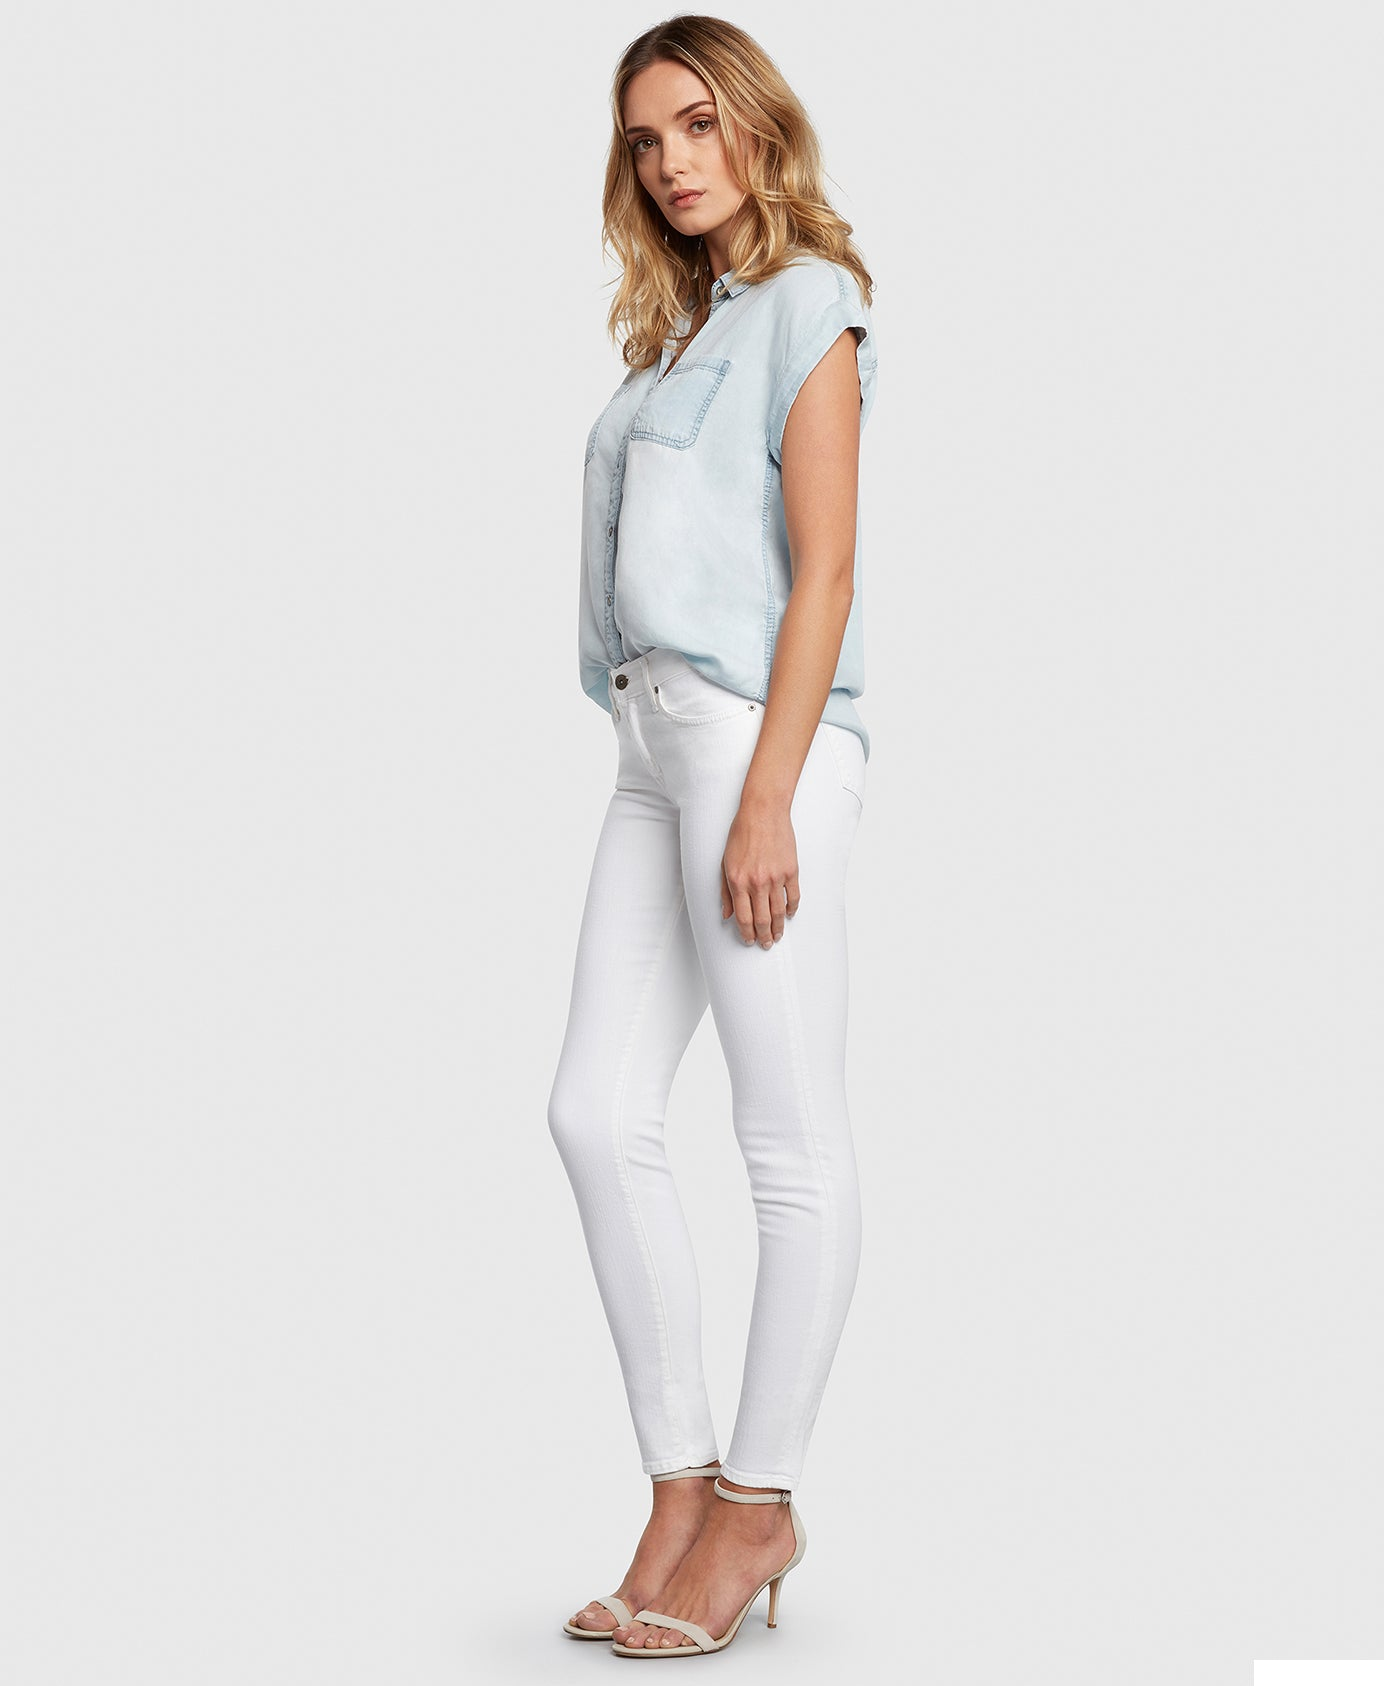 Principle DREAMER in White twill mid rise skinny jeans side